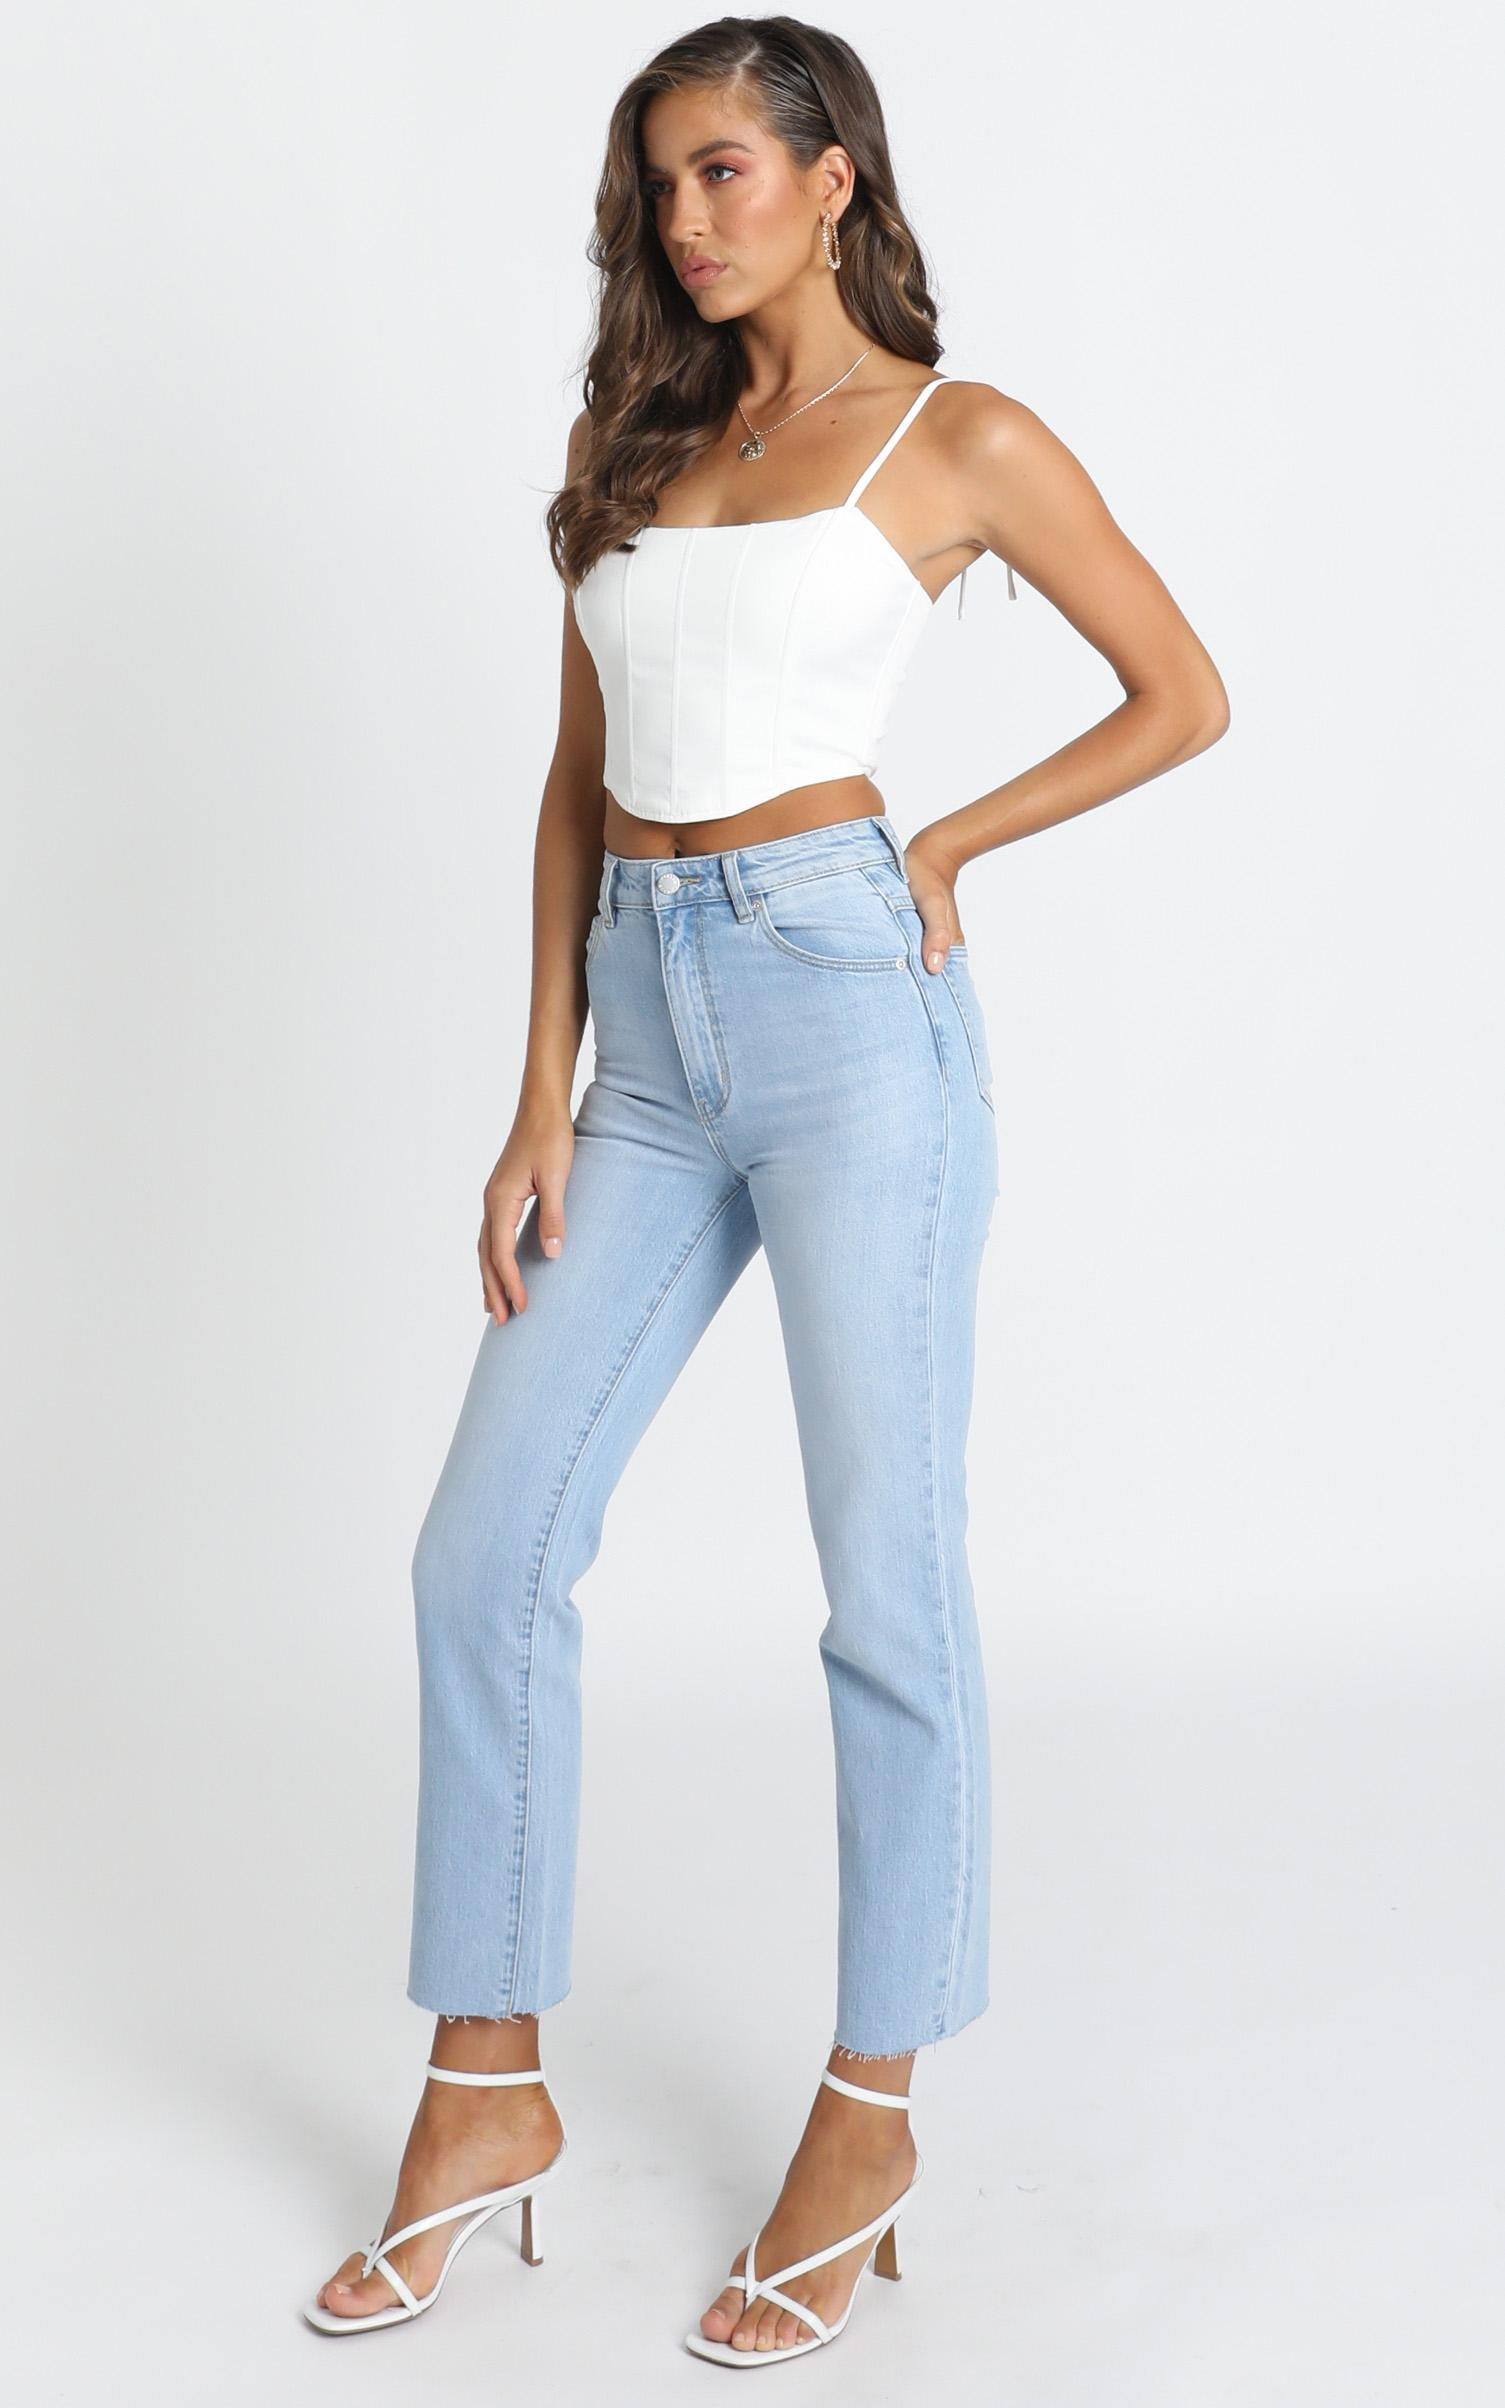 Rollas - Original Straight Jeans in comfort sky - 14 (XL), Blue, hi-res image number null